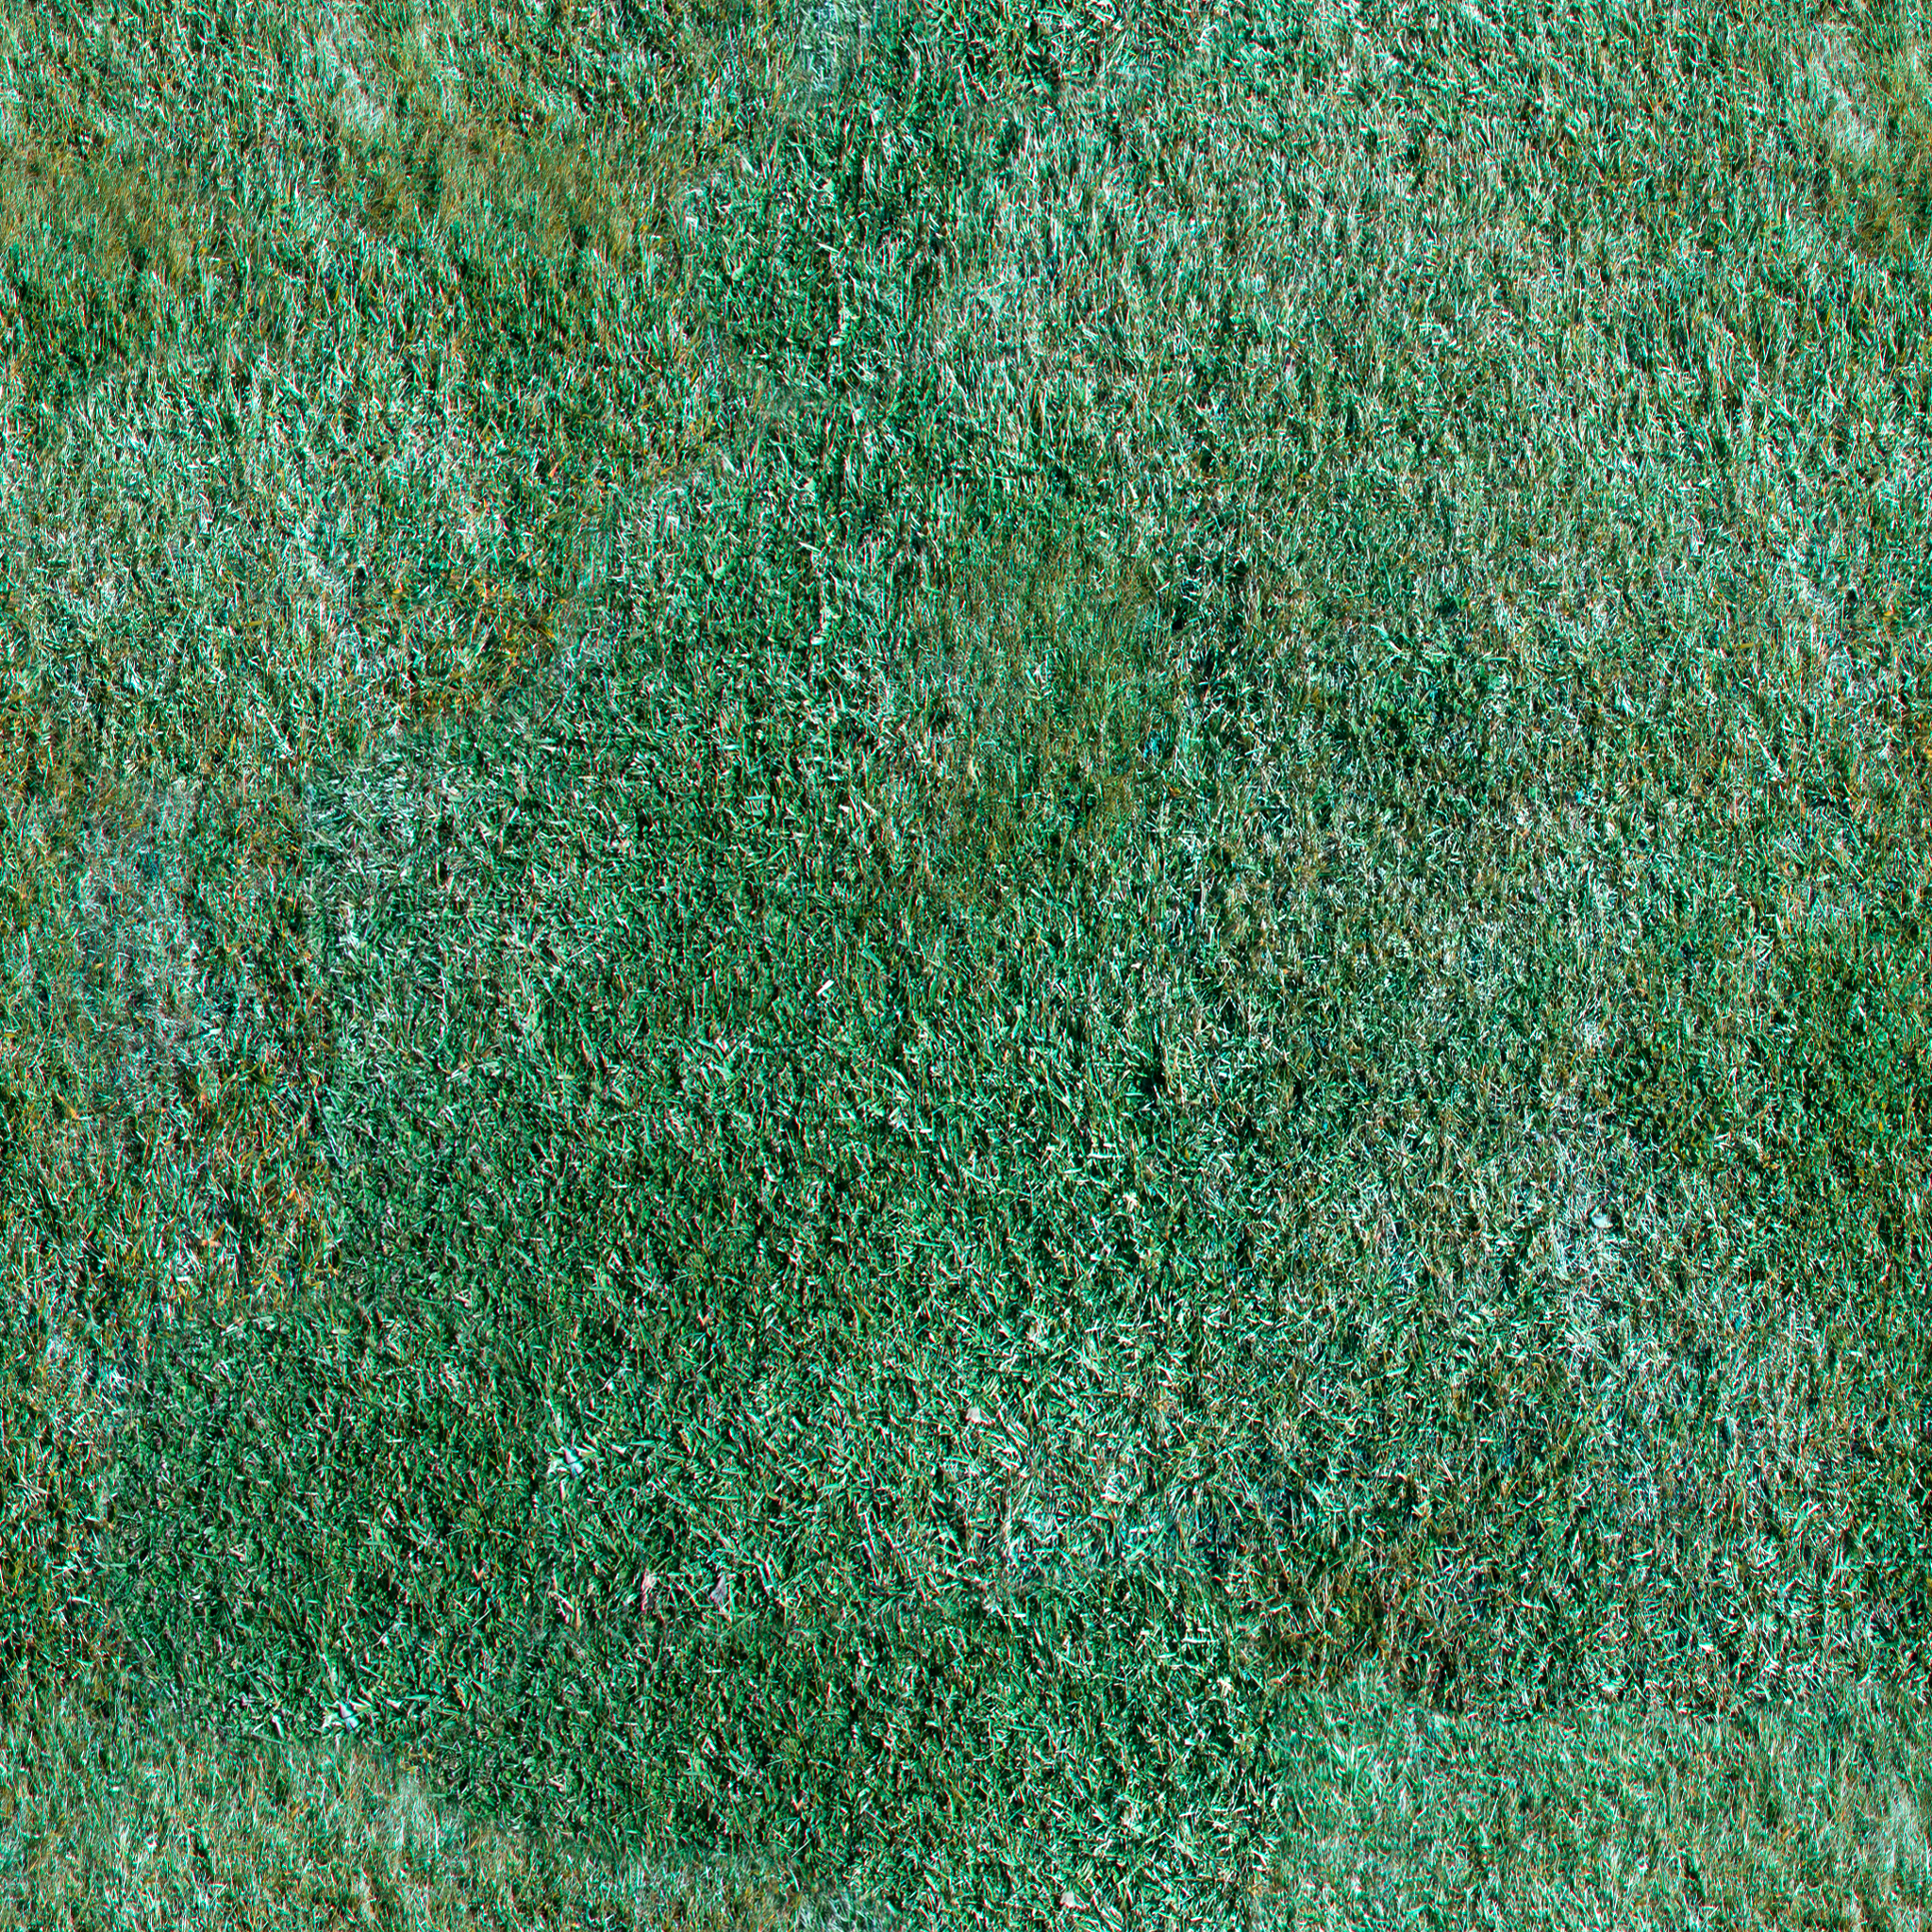 manicured-lawn.jpg